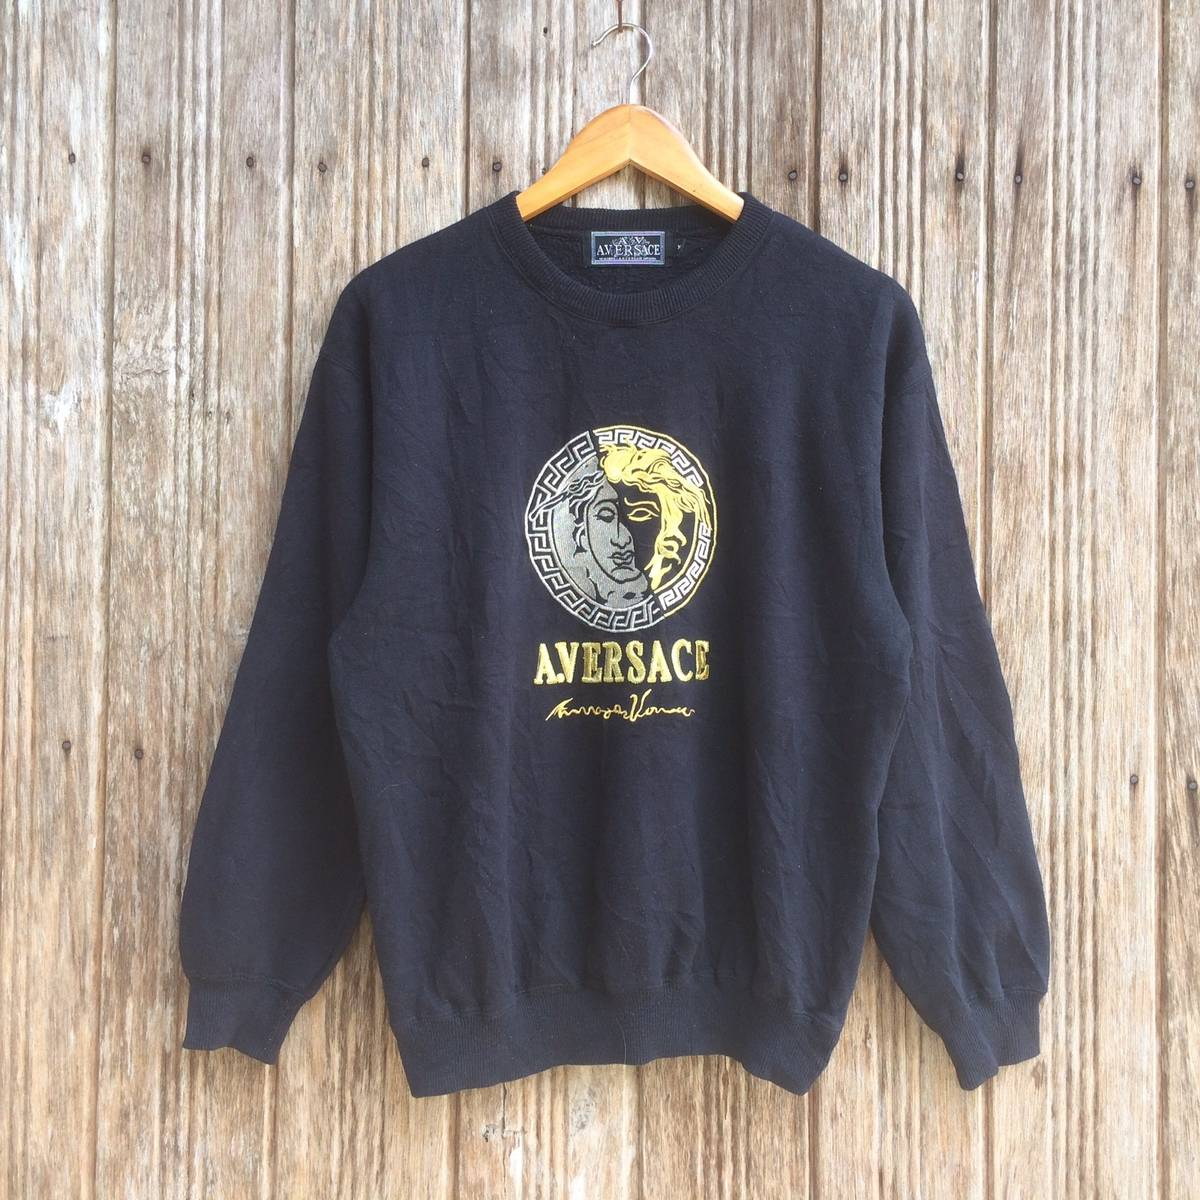 Versace Rare!! Vintage A. Versace Embroidery Gold Logo Nice Design Medium  size Size m - Sweatshirts   Hoodies for Sale - Grailed 8e7ff652a